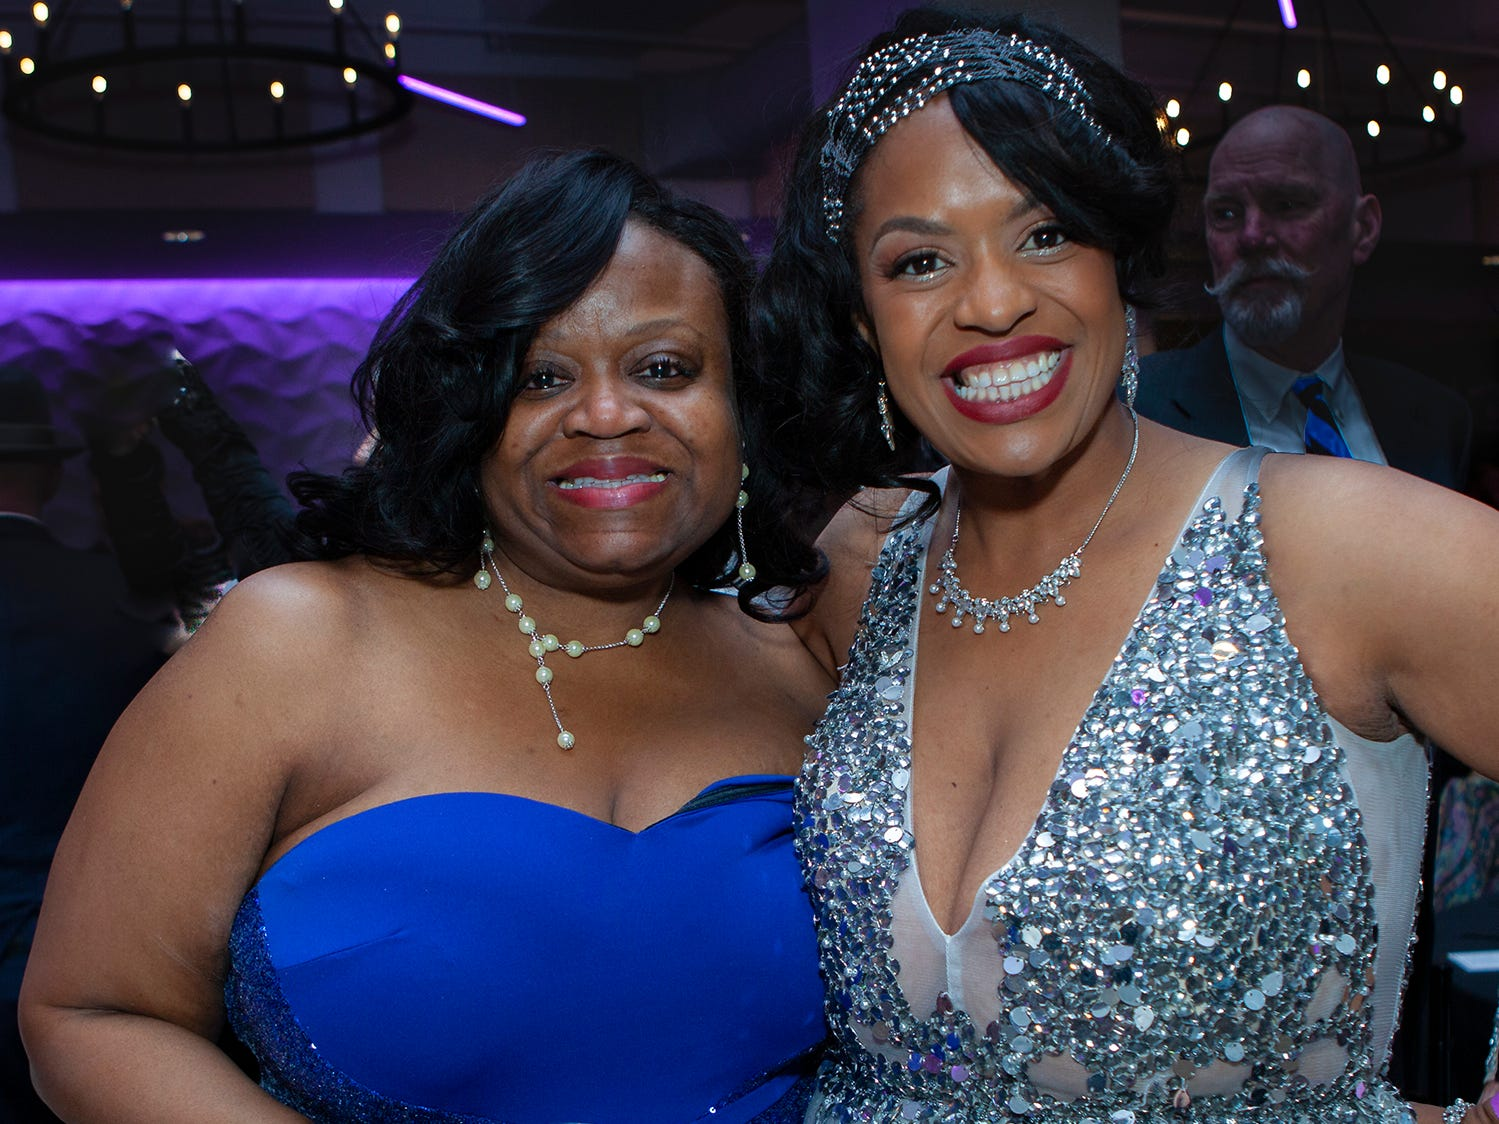 Bobbie Thomas and Michelle Lynn Thomas at The Gatsby Party, hosted by the Alzheimer's Association at The View at Fountains Saturday, March 16, 2019.